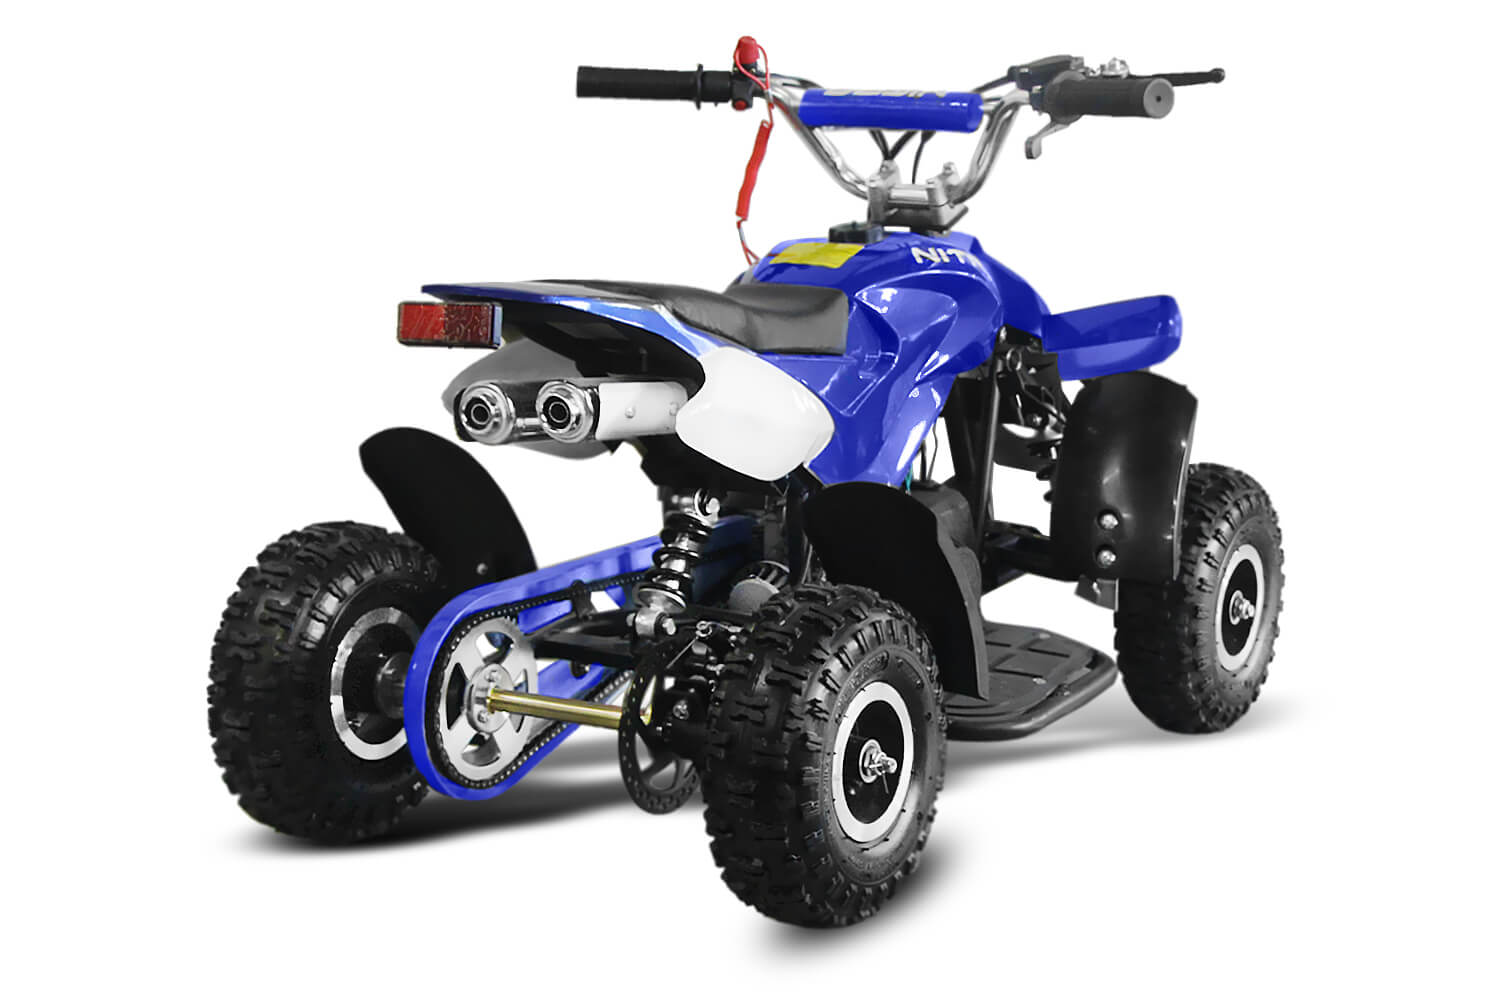 Dragon Ii 49cc Mini Quad From Nitro Motors Bikes Store How To Wire A Kill Switch On Small Engine Youtube Specification